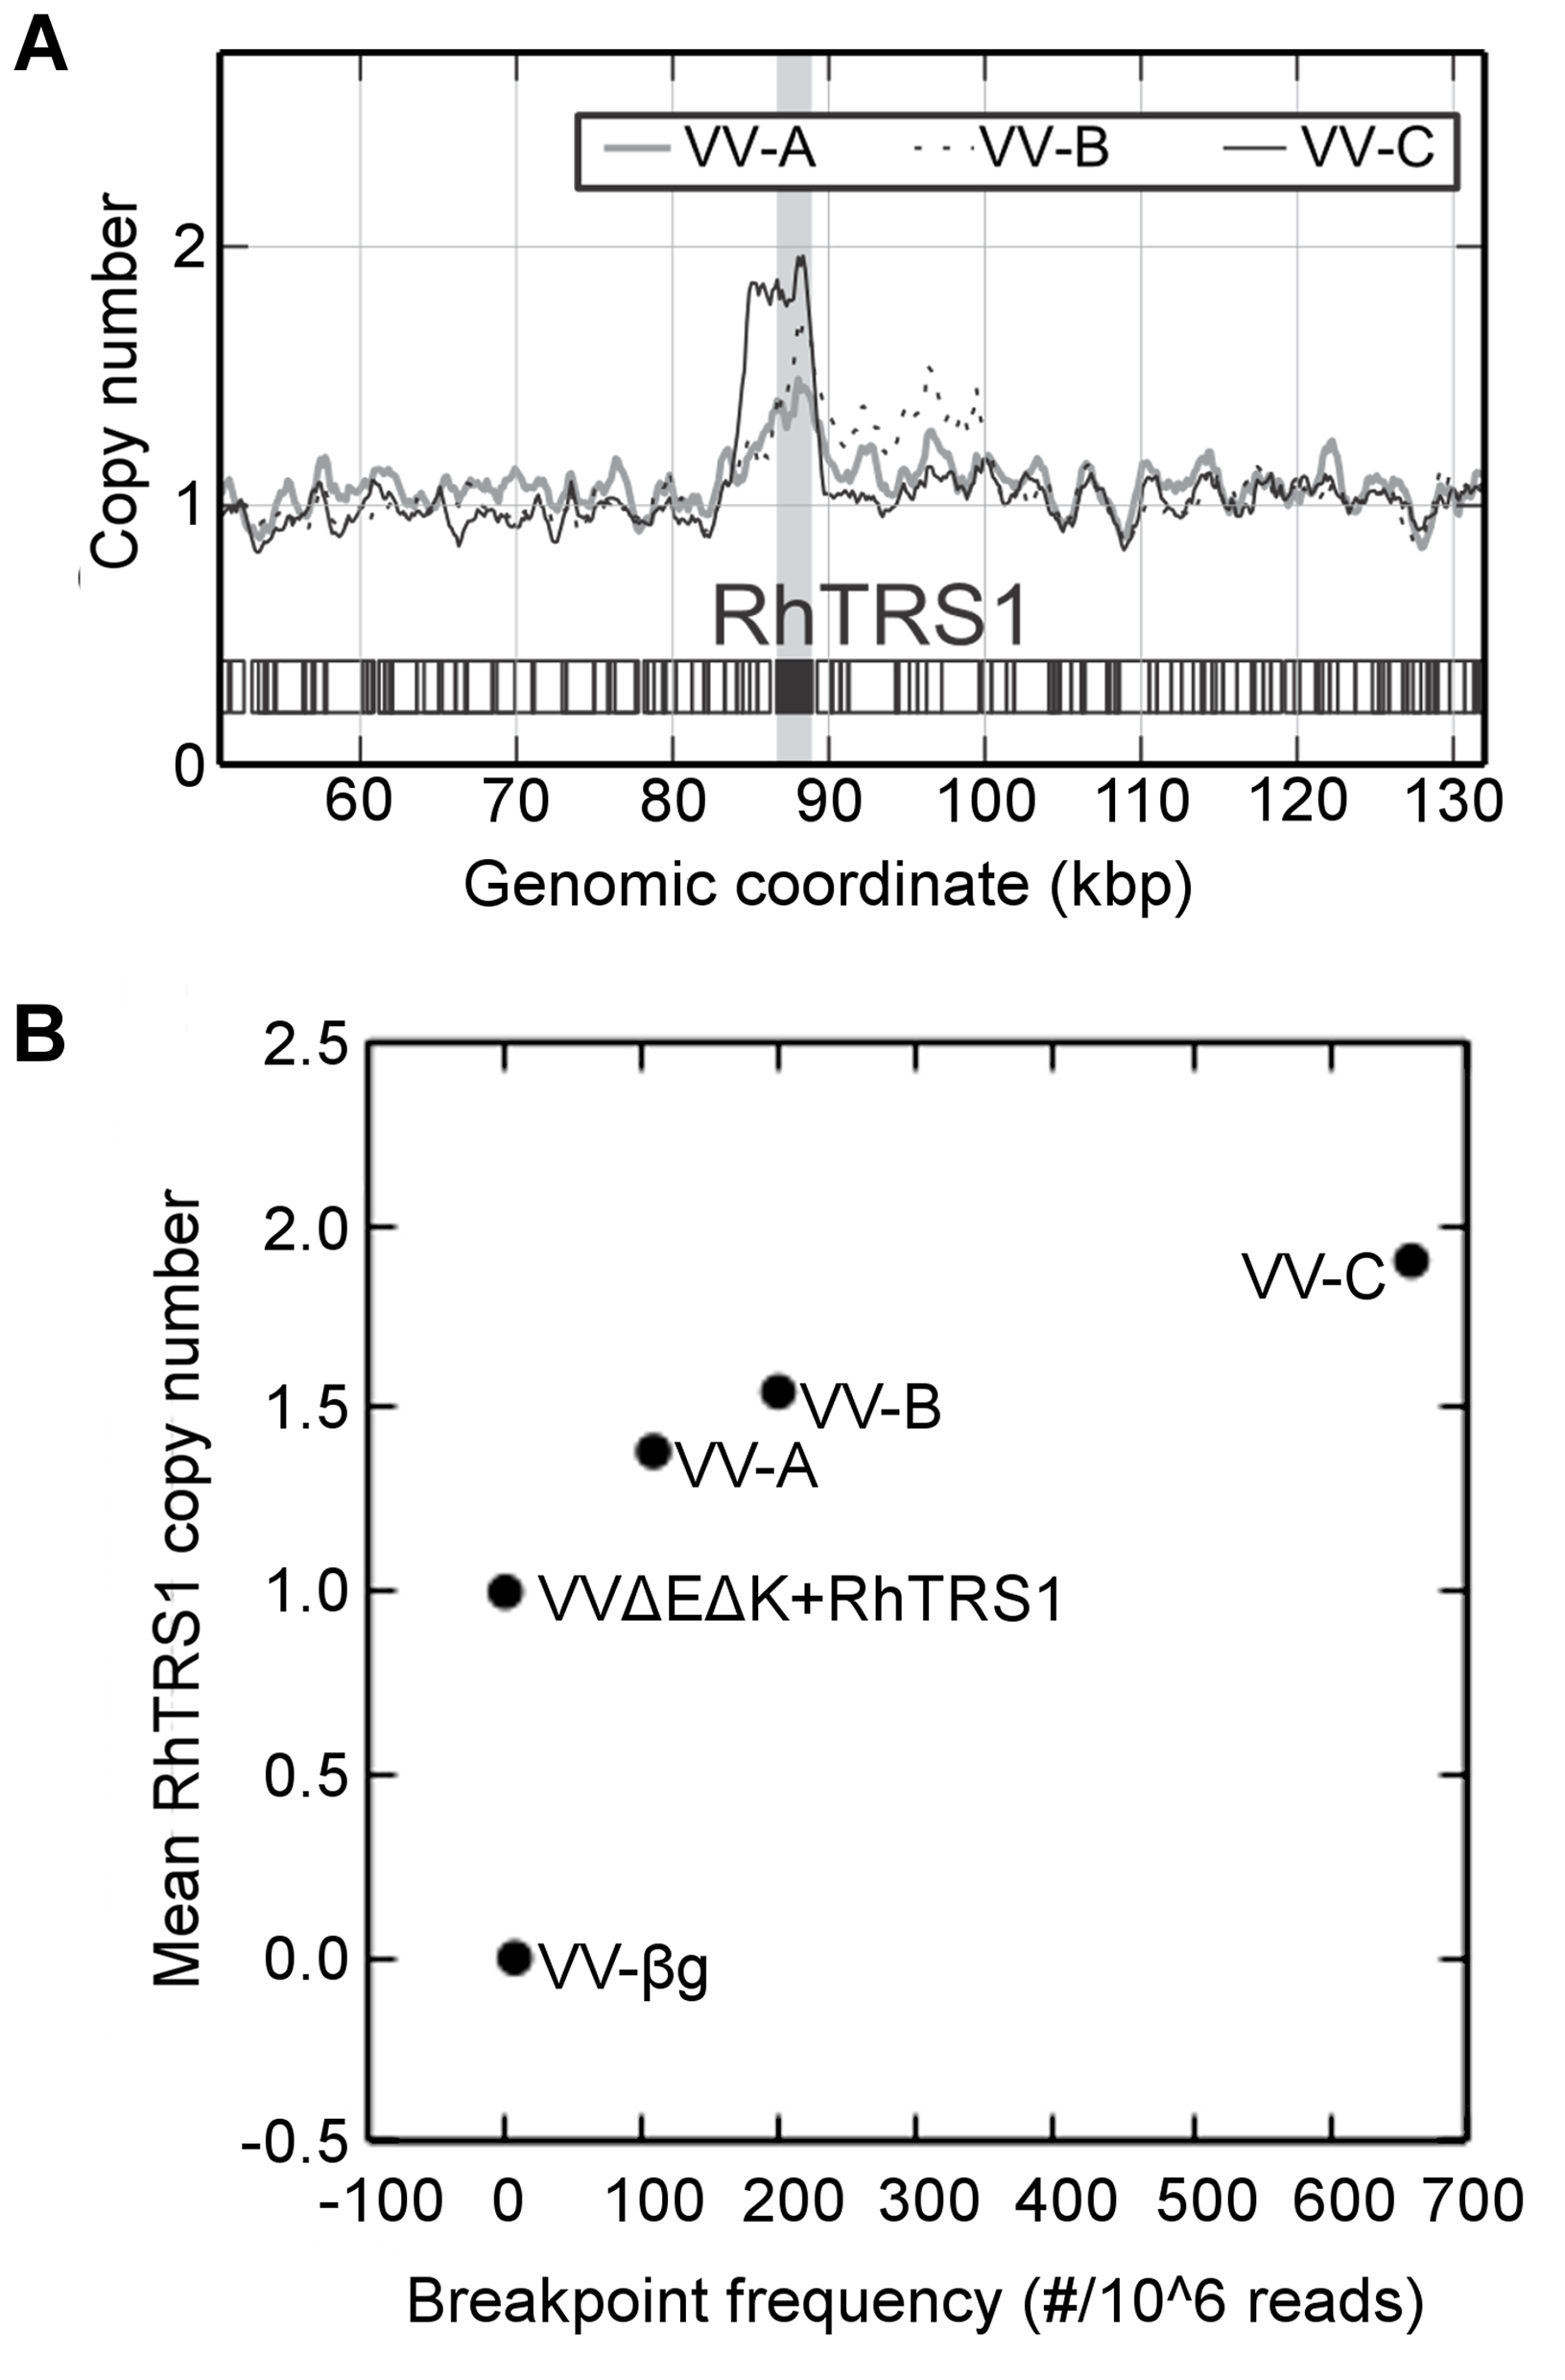 <i>Rhtrs1</i> copy number variation relative to VVΔEΔK+RhTRS1.